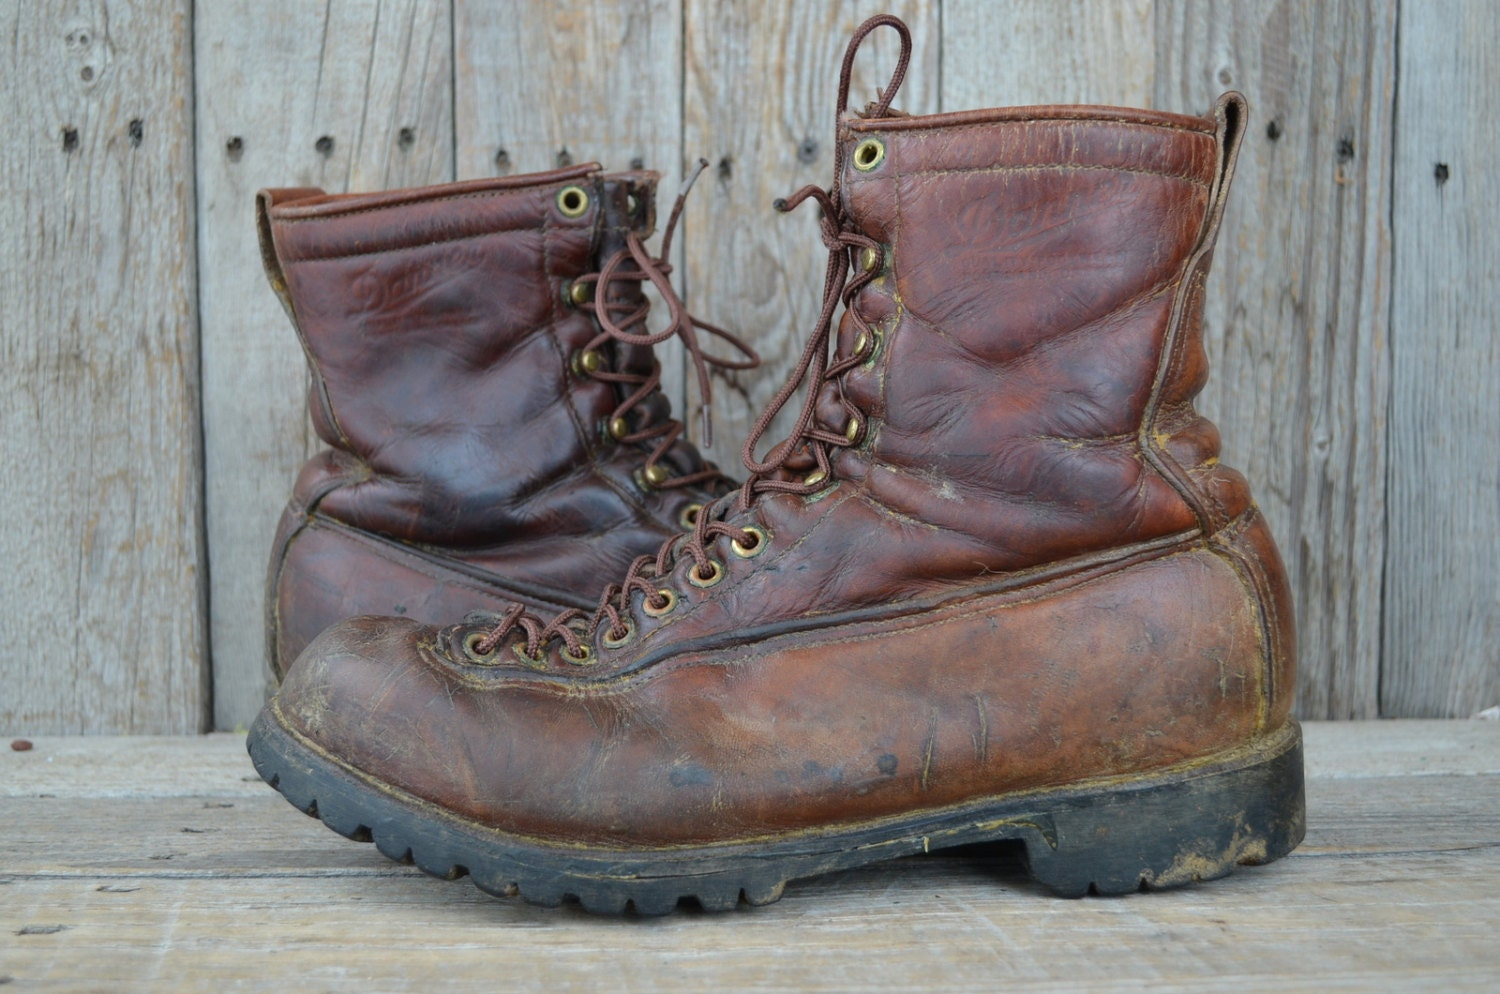 SALE Vintage Danner Lace To Toe Mountaineer Hiking Monkey Work